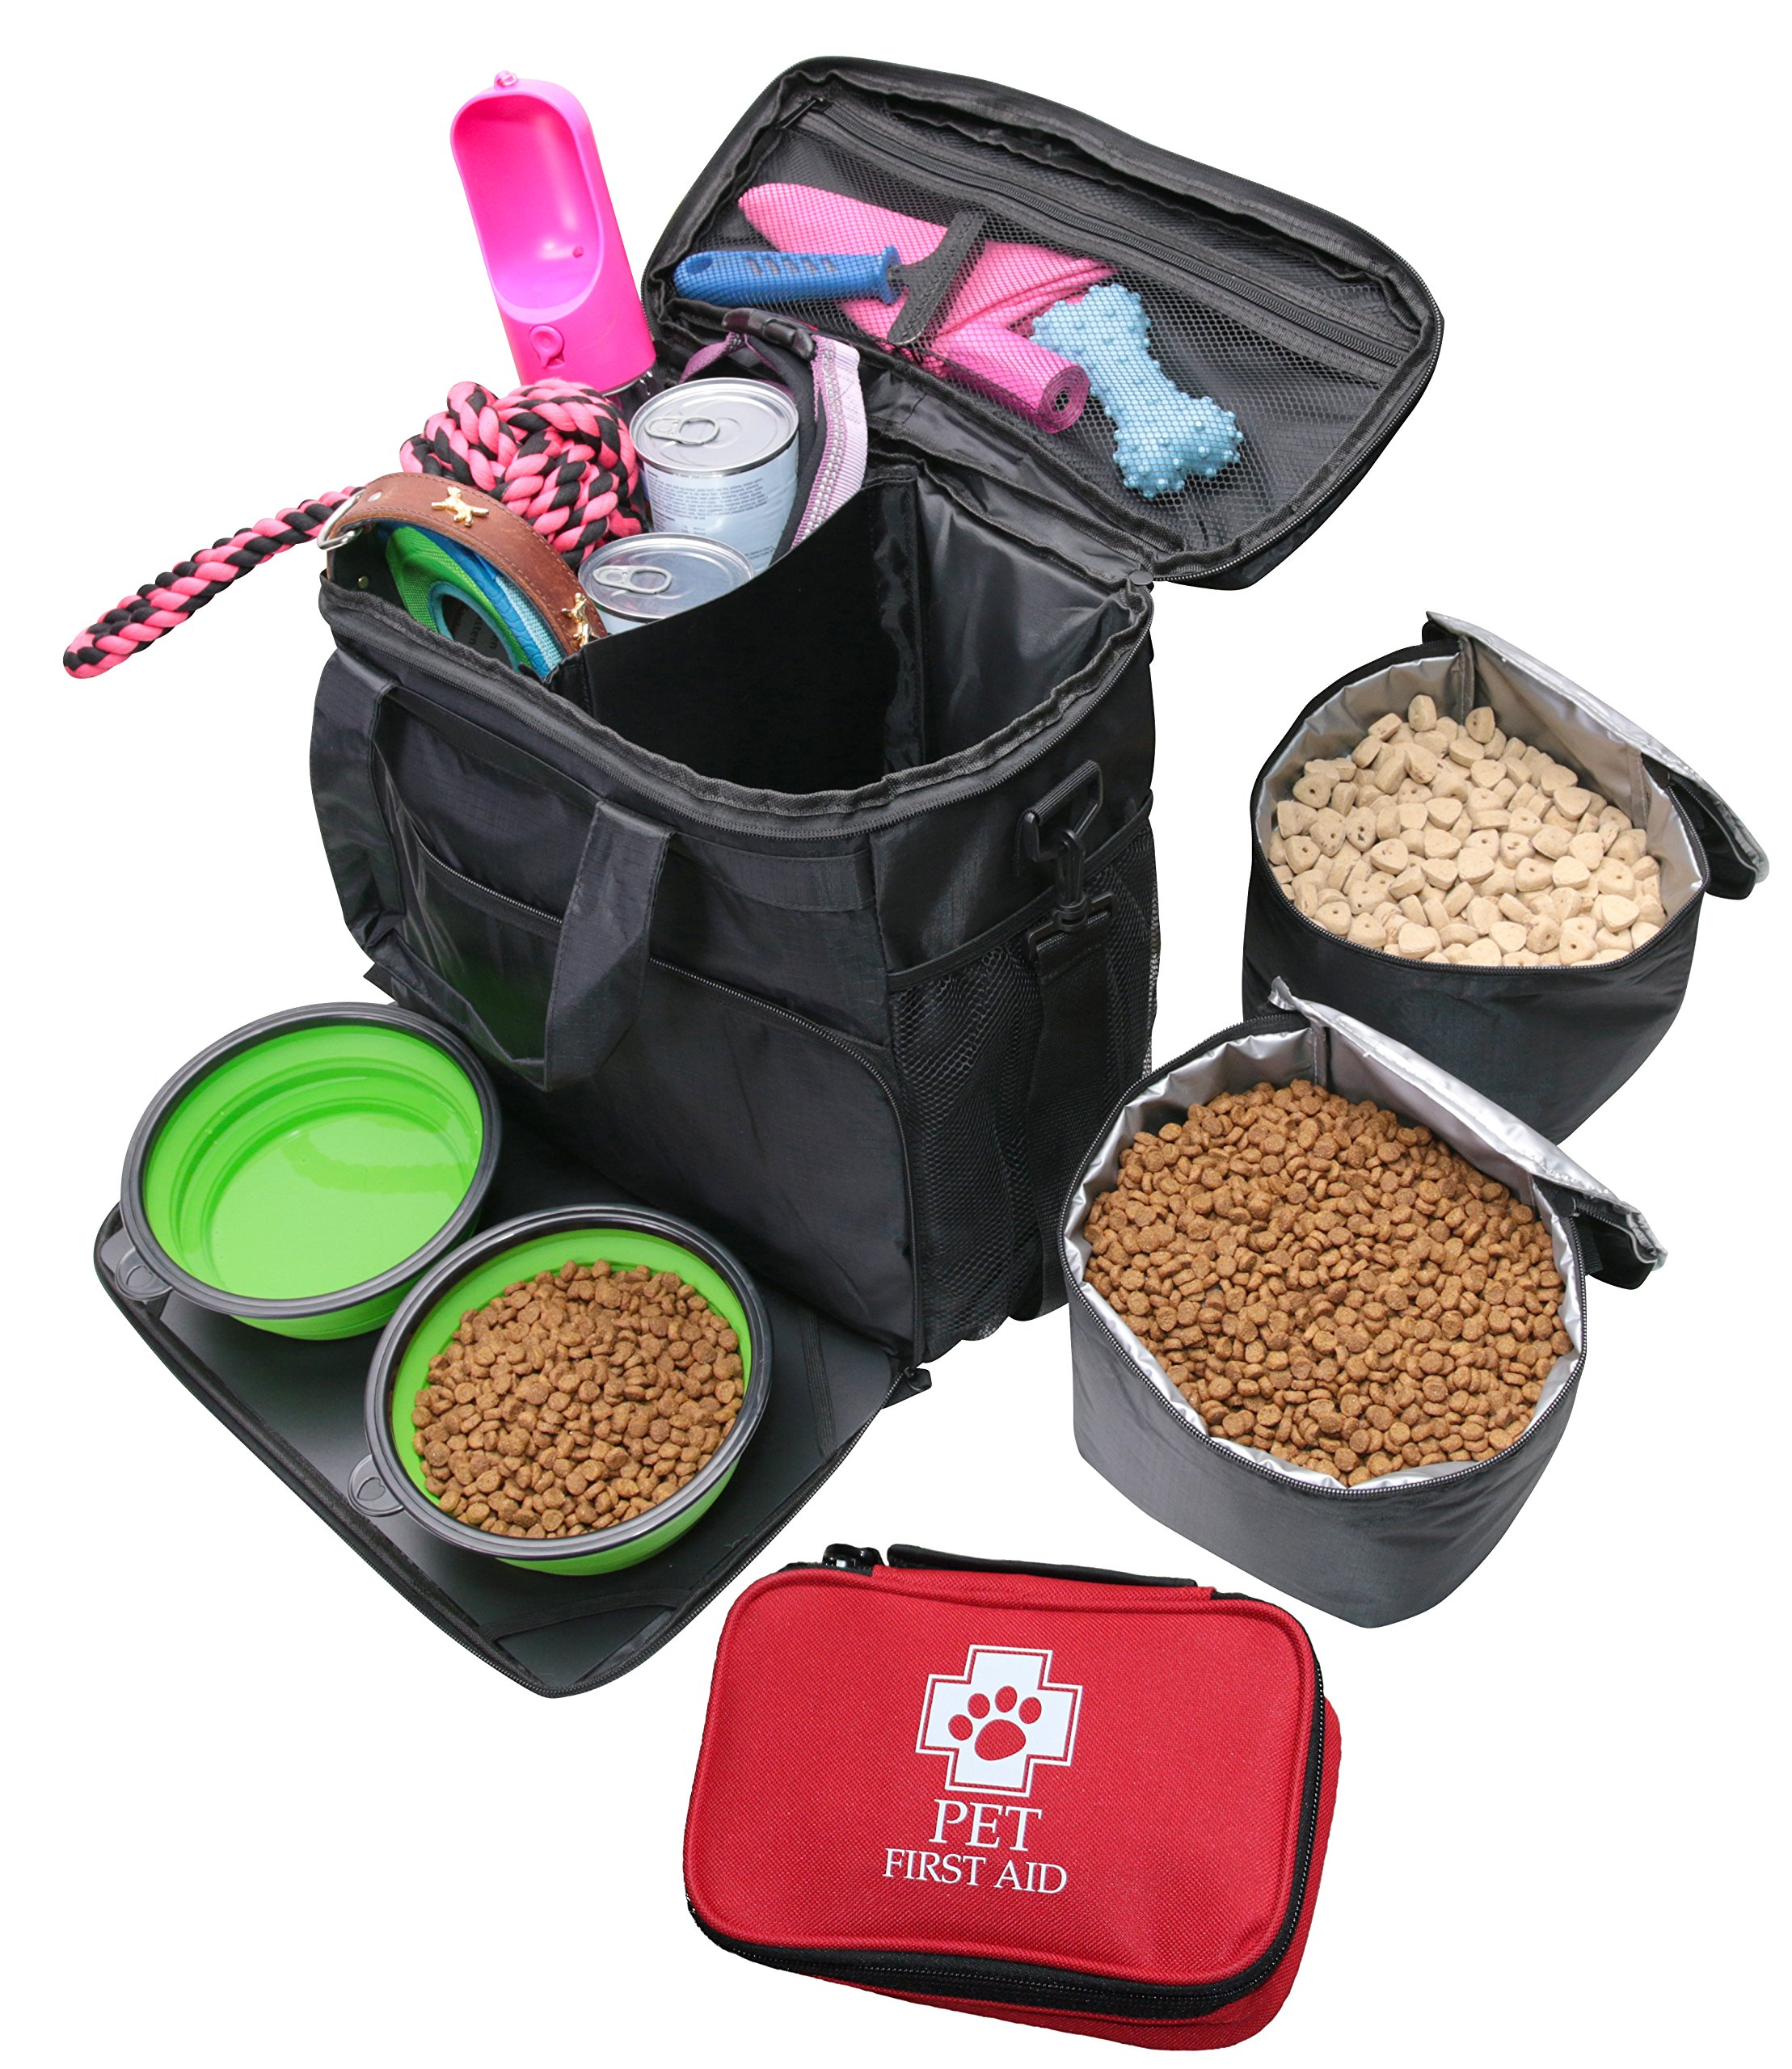 Labra Pet Dog Pet Travel Bag Carry On Luggage - Includes Bag, Pet First Aid Kit, Lined Food Containers, Collapsible Bowls and Placemat